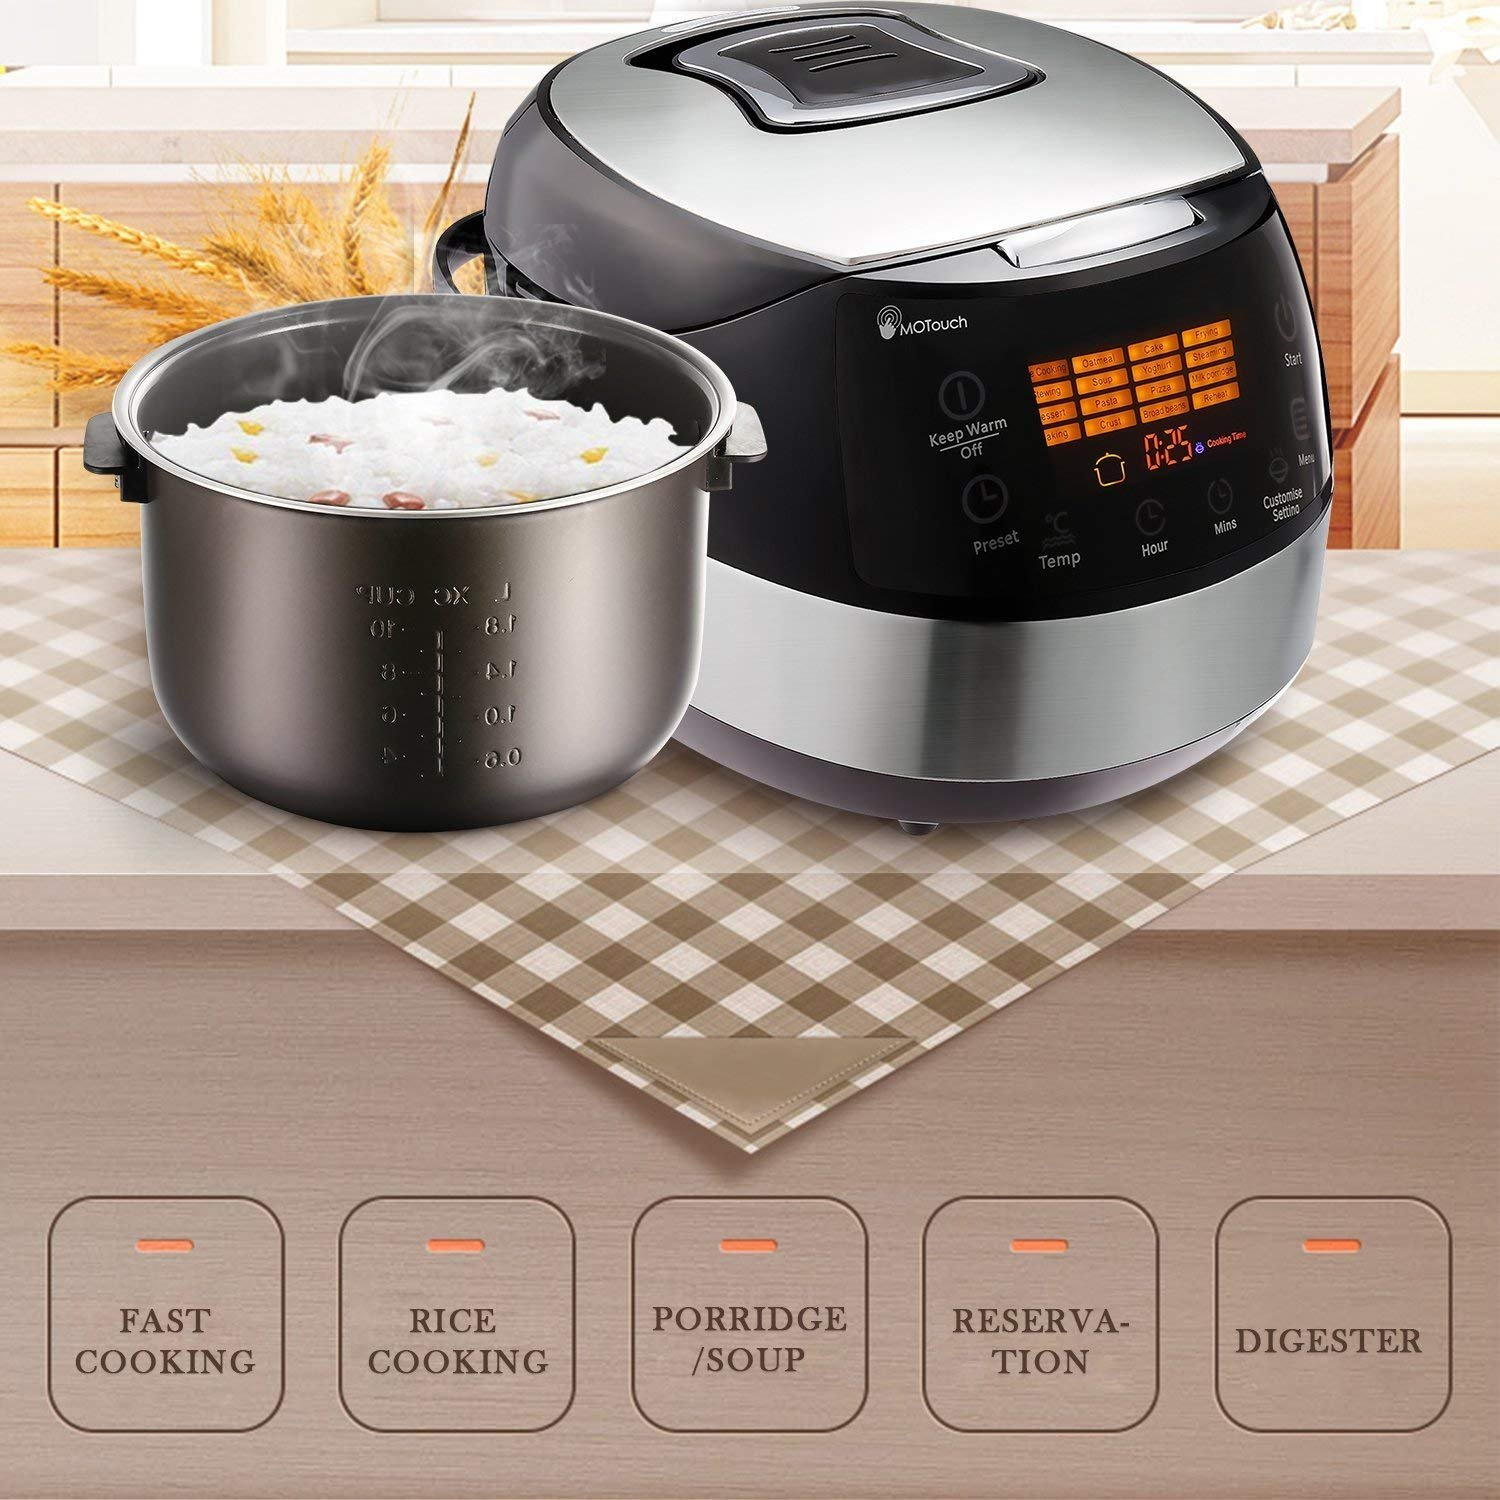 Rice Cooker Steamer 20 Cup Cooked (10 cup uncooked) Slow Cooker 24 Hours Delay Timers 6 QT 7 in 1 Electric Rice Cooker Black